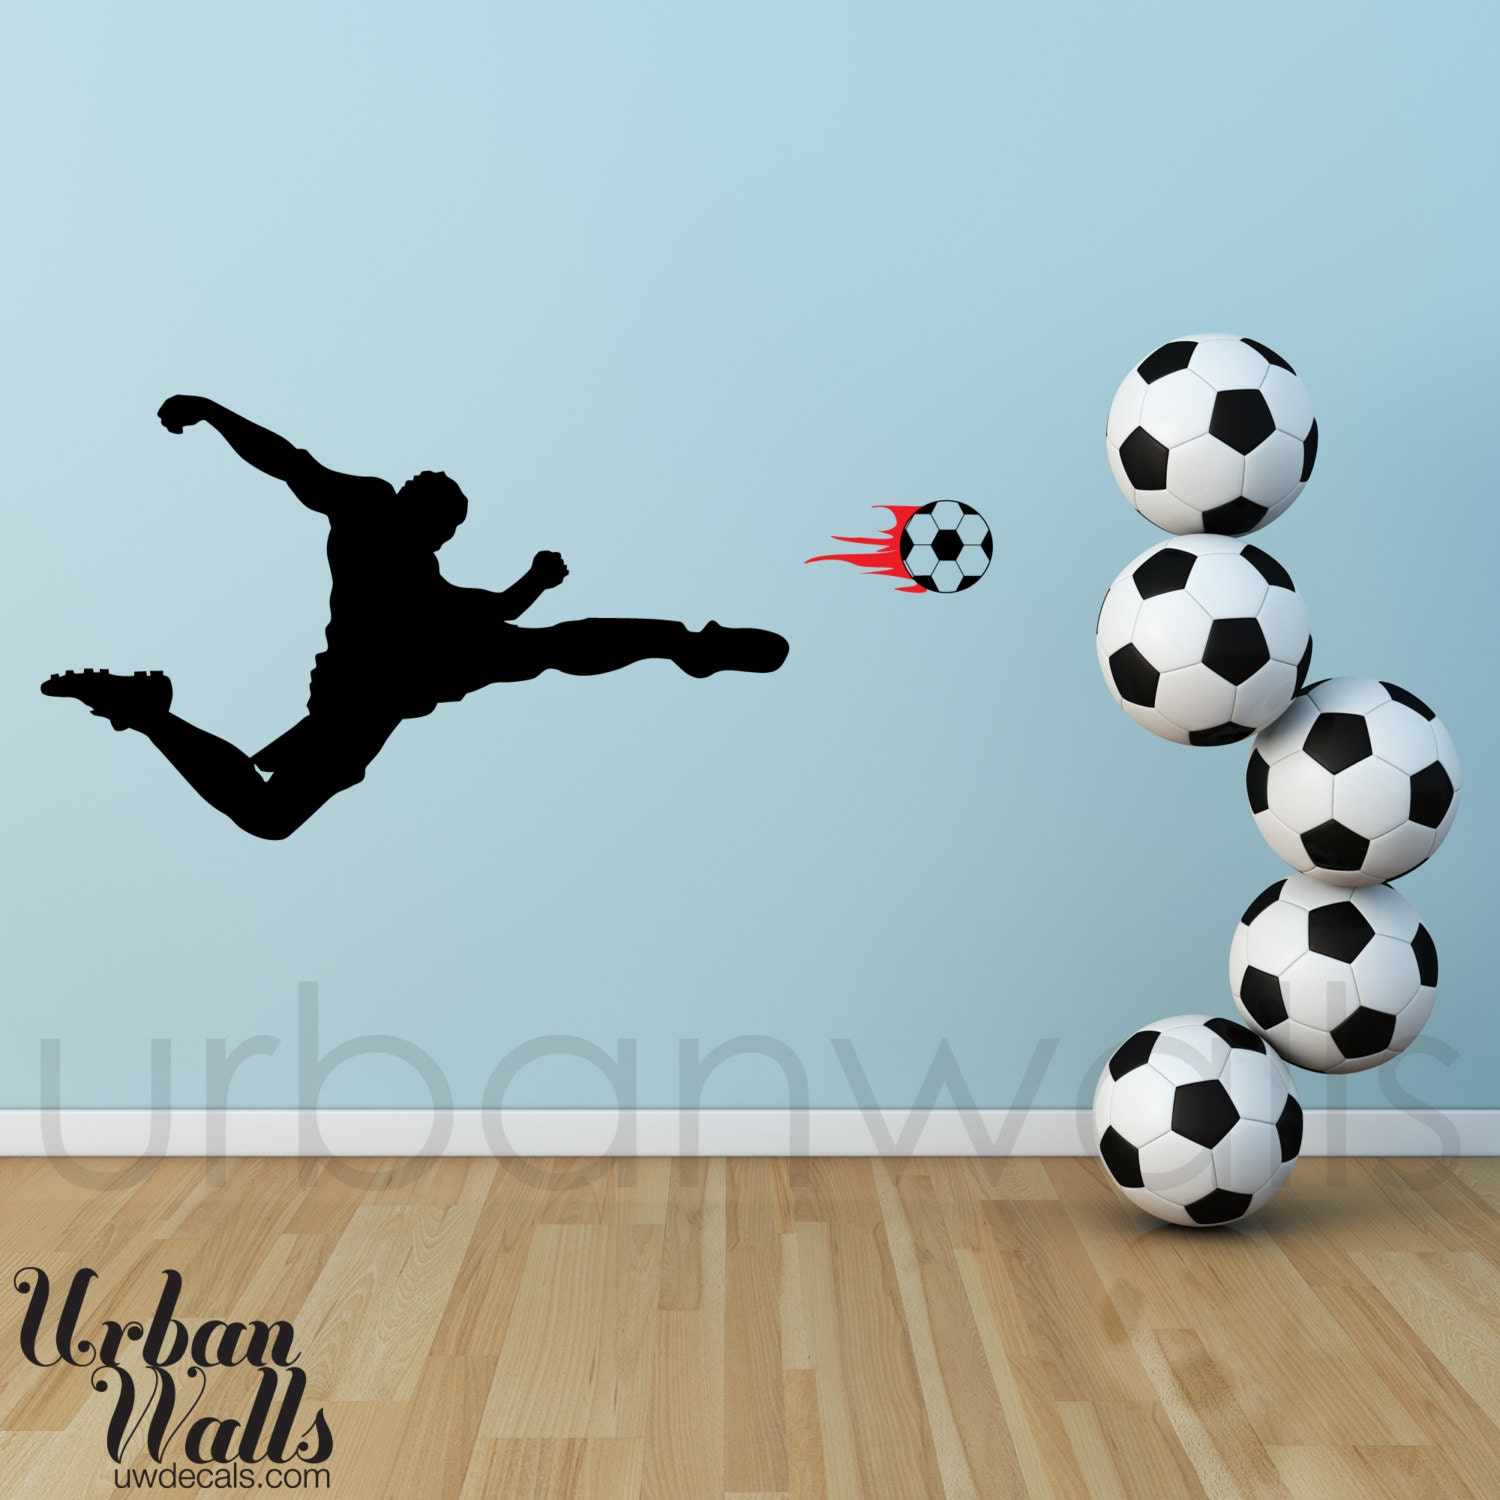 vinyl wall sticker decal art soccer player